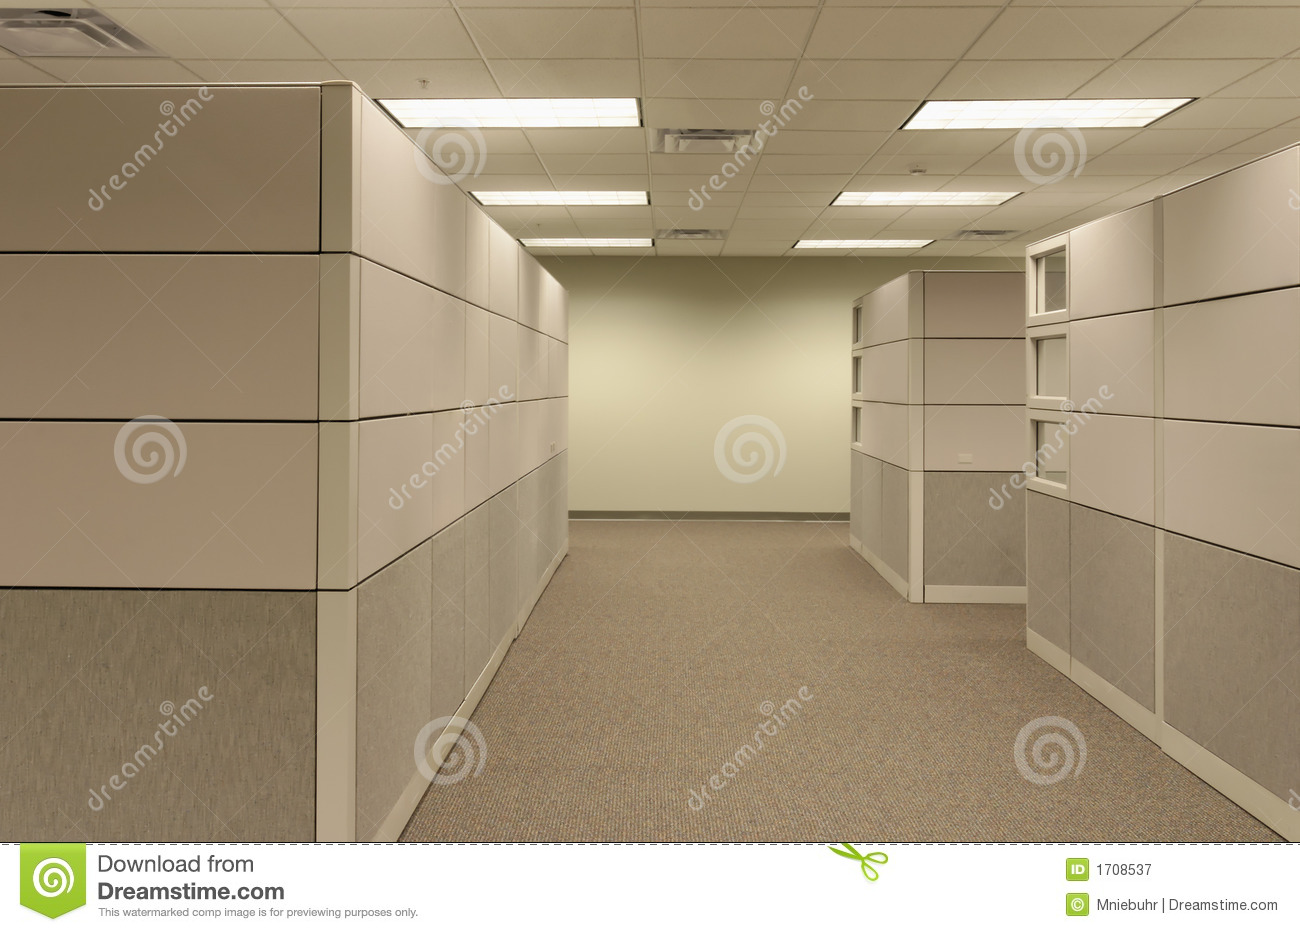 Royalty Free Stock Photography: Beige open generic Office Cubical